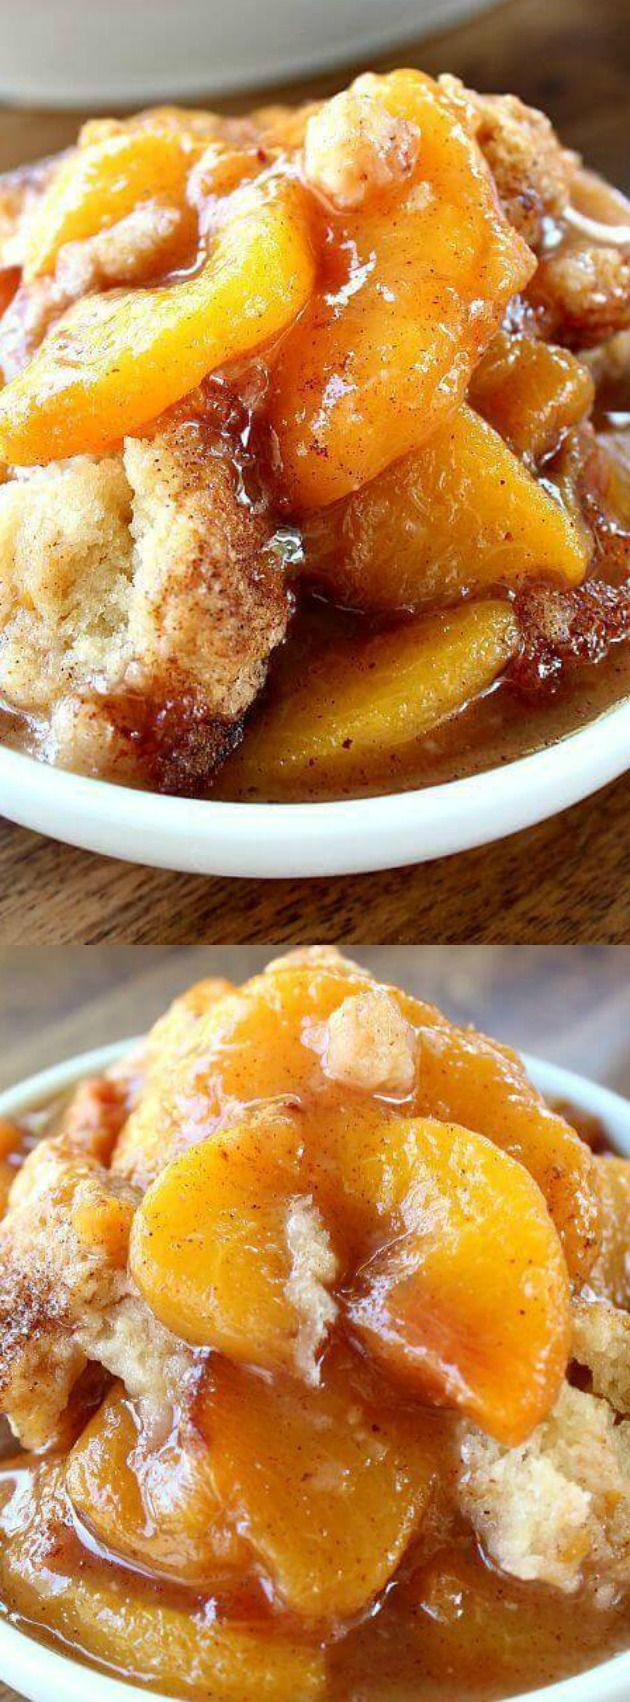 When you bake this Fresh Peach Cobbler recipe the mixture of the peaches with the cinnamon and the juices smell SO GOOD -- and taste even better!